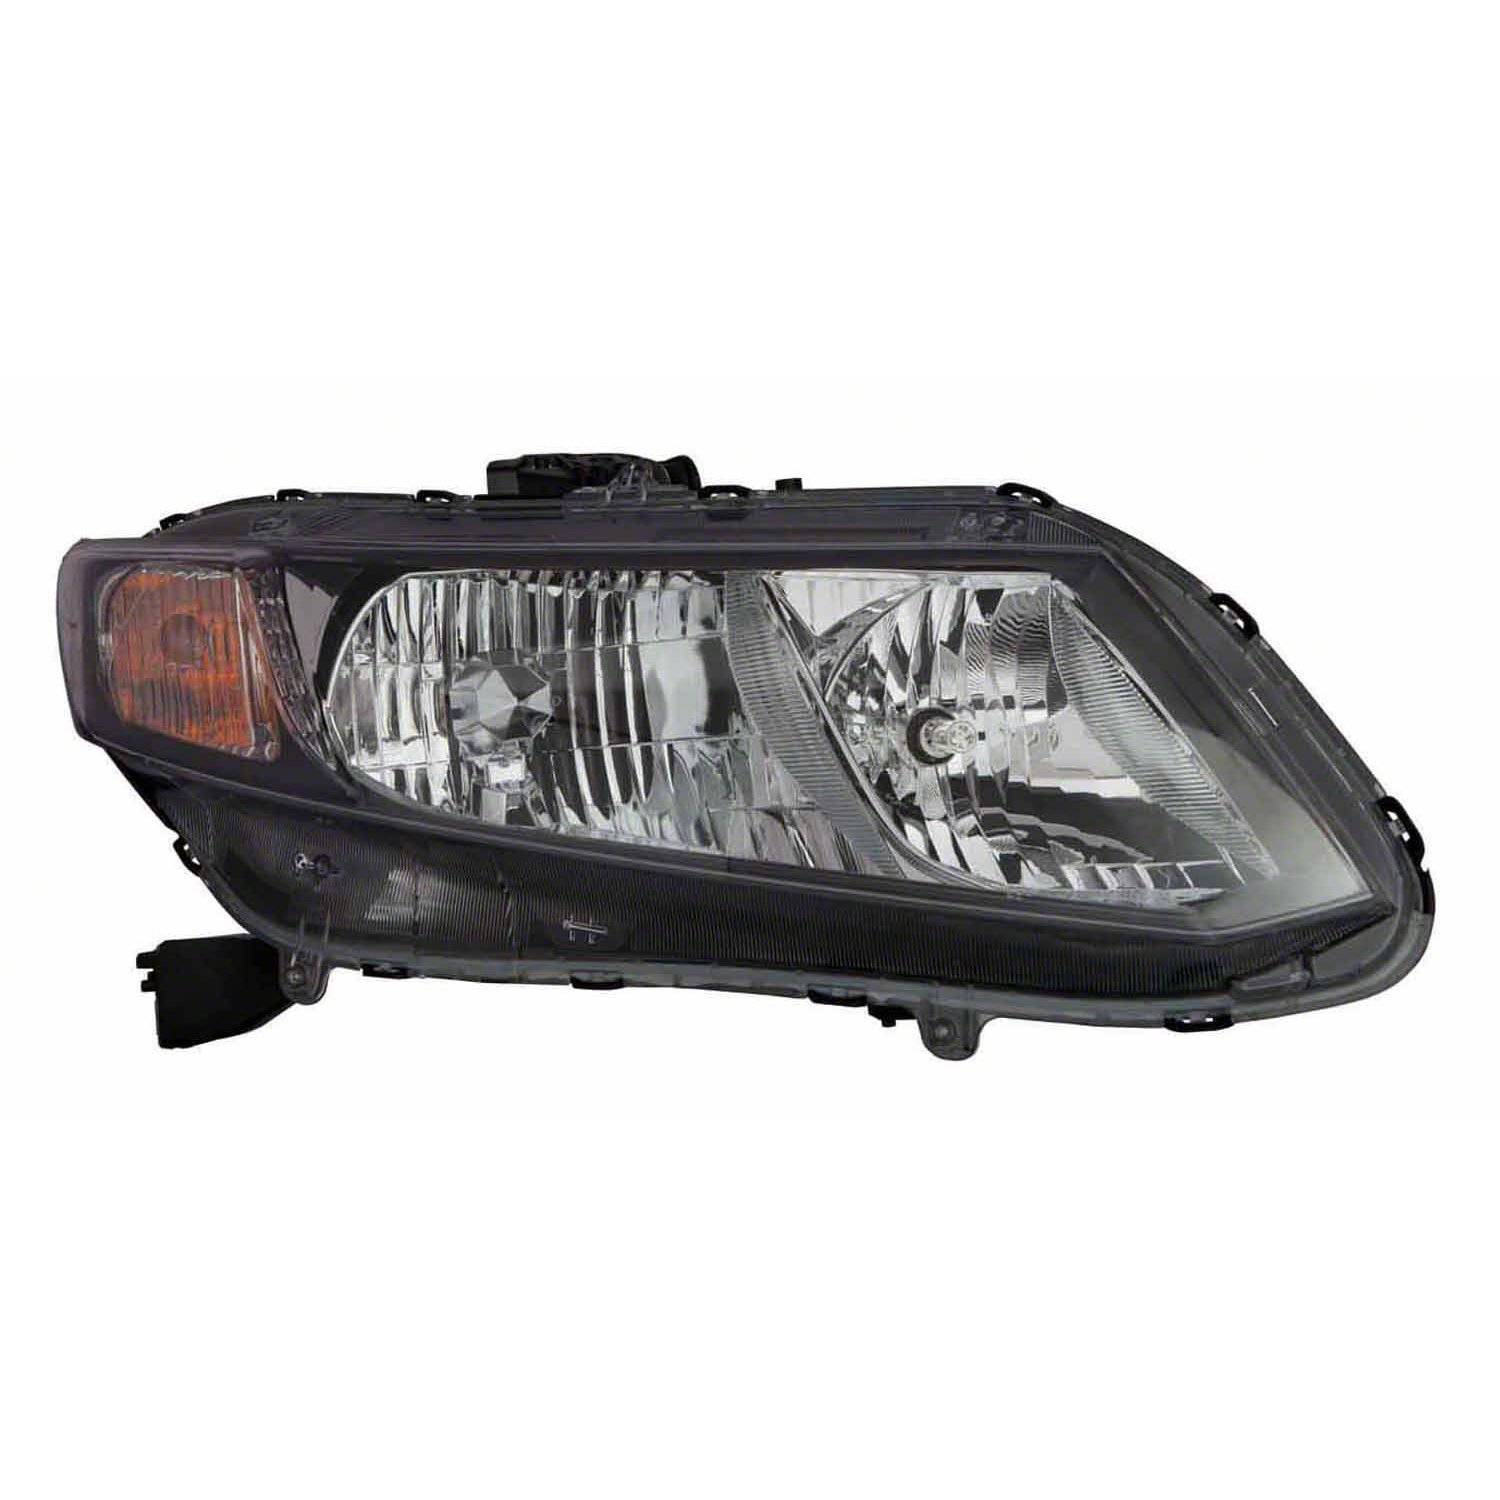 HONDA CIVIC COUPE 2013-2015 PartsChannel HO2503150R OE Replacement Headlight Assembly